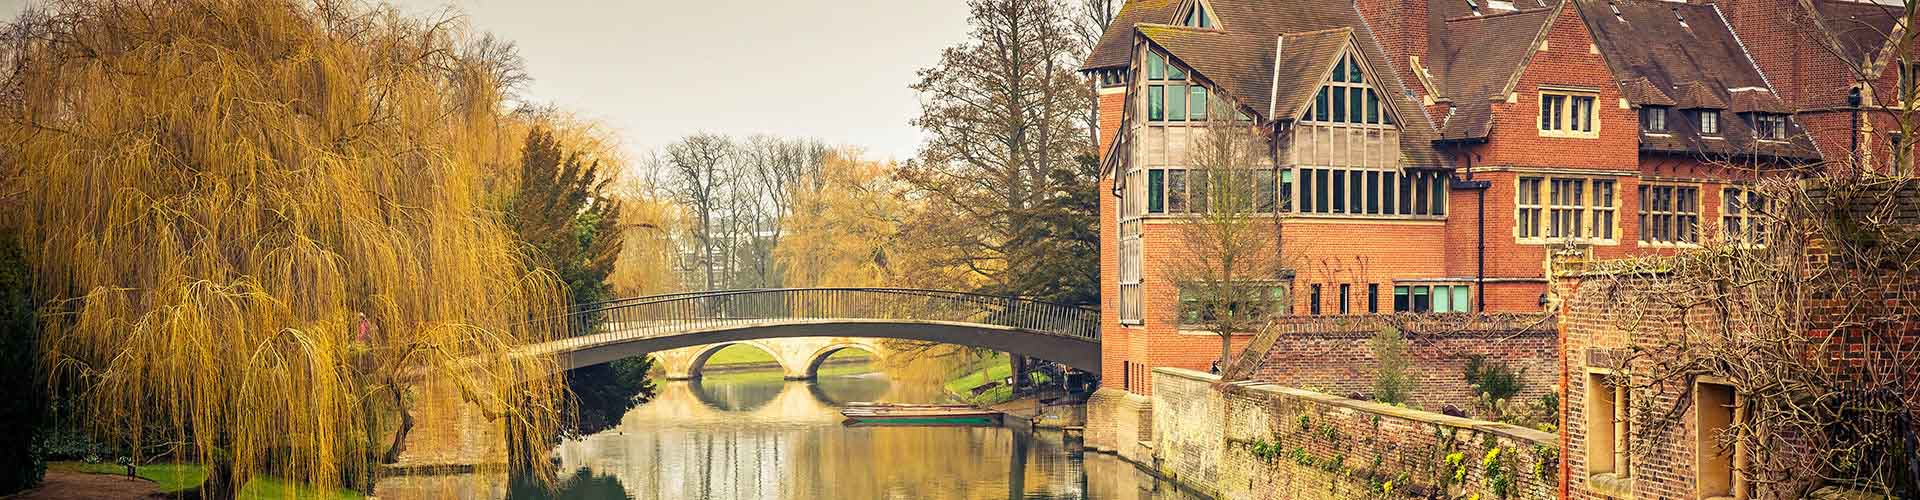 Cambridge – Hostels in Cambridge. Maps for Cambridge, Photos and Reviews for each hostel in Cambridge.